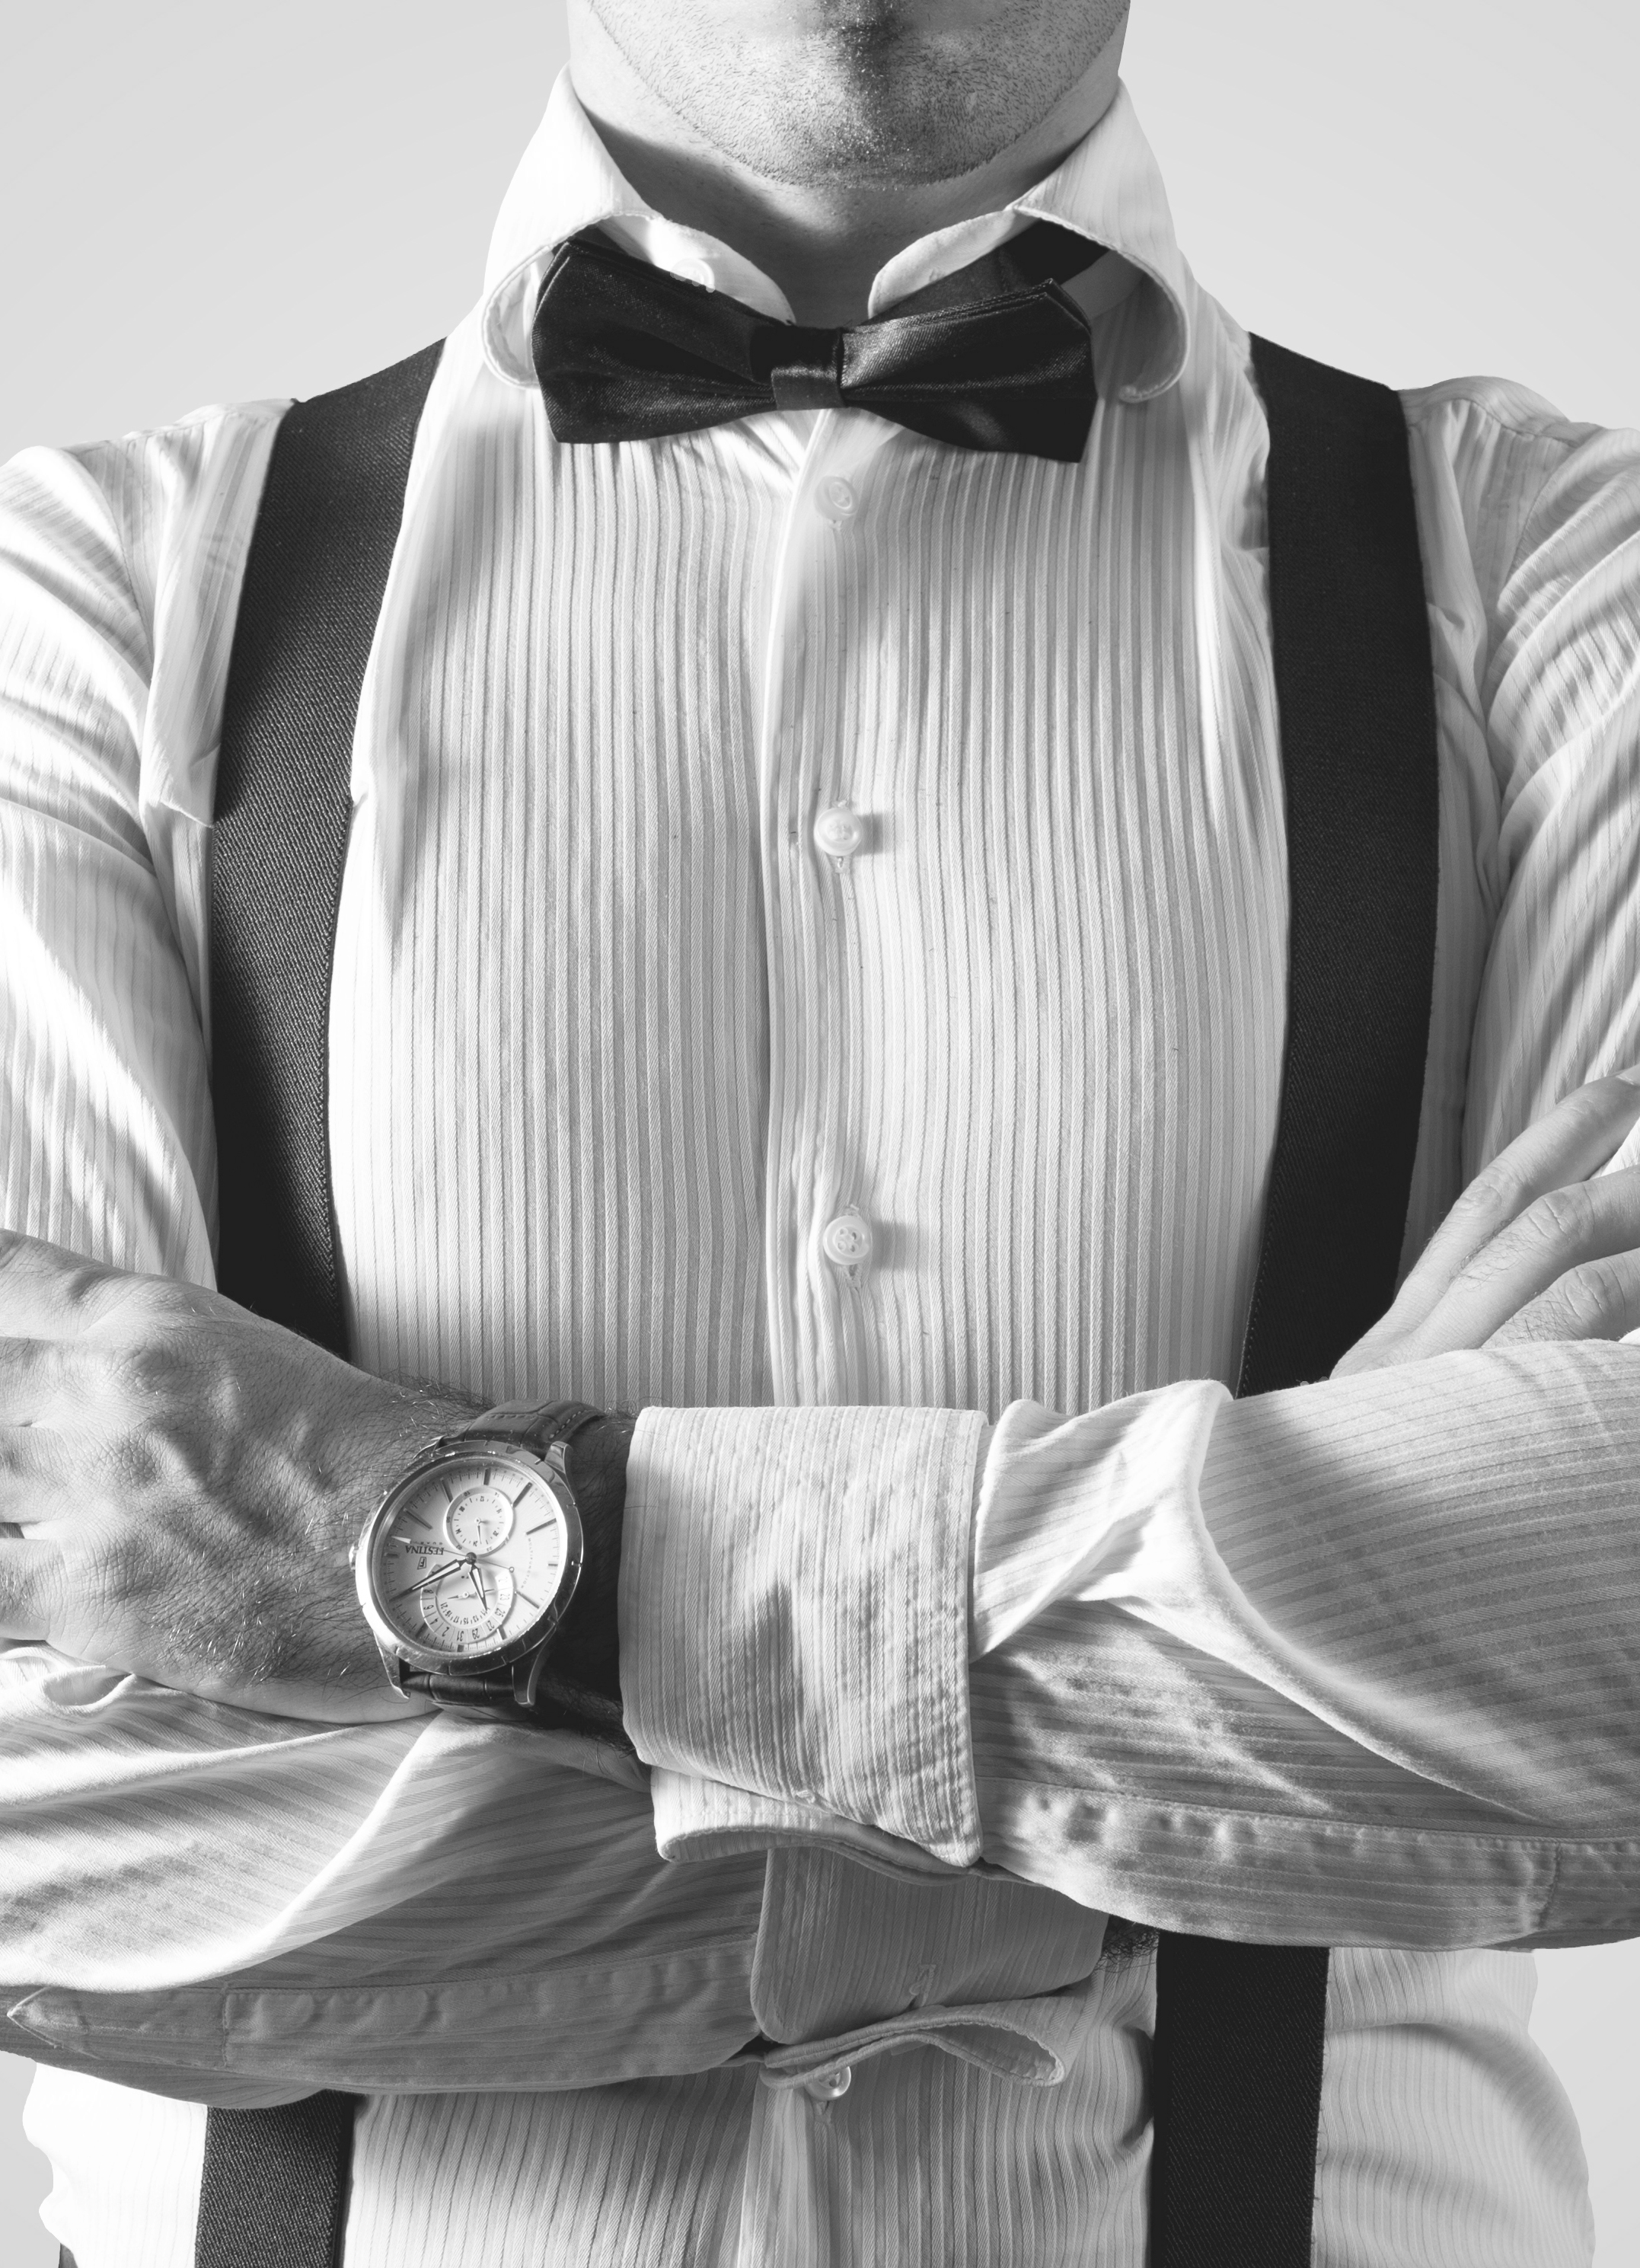 bow-tie-businessman-fashiogreyn-man-copy